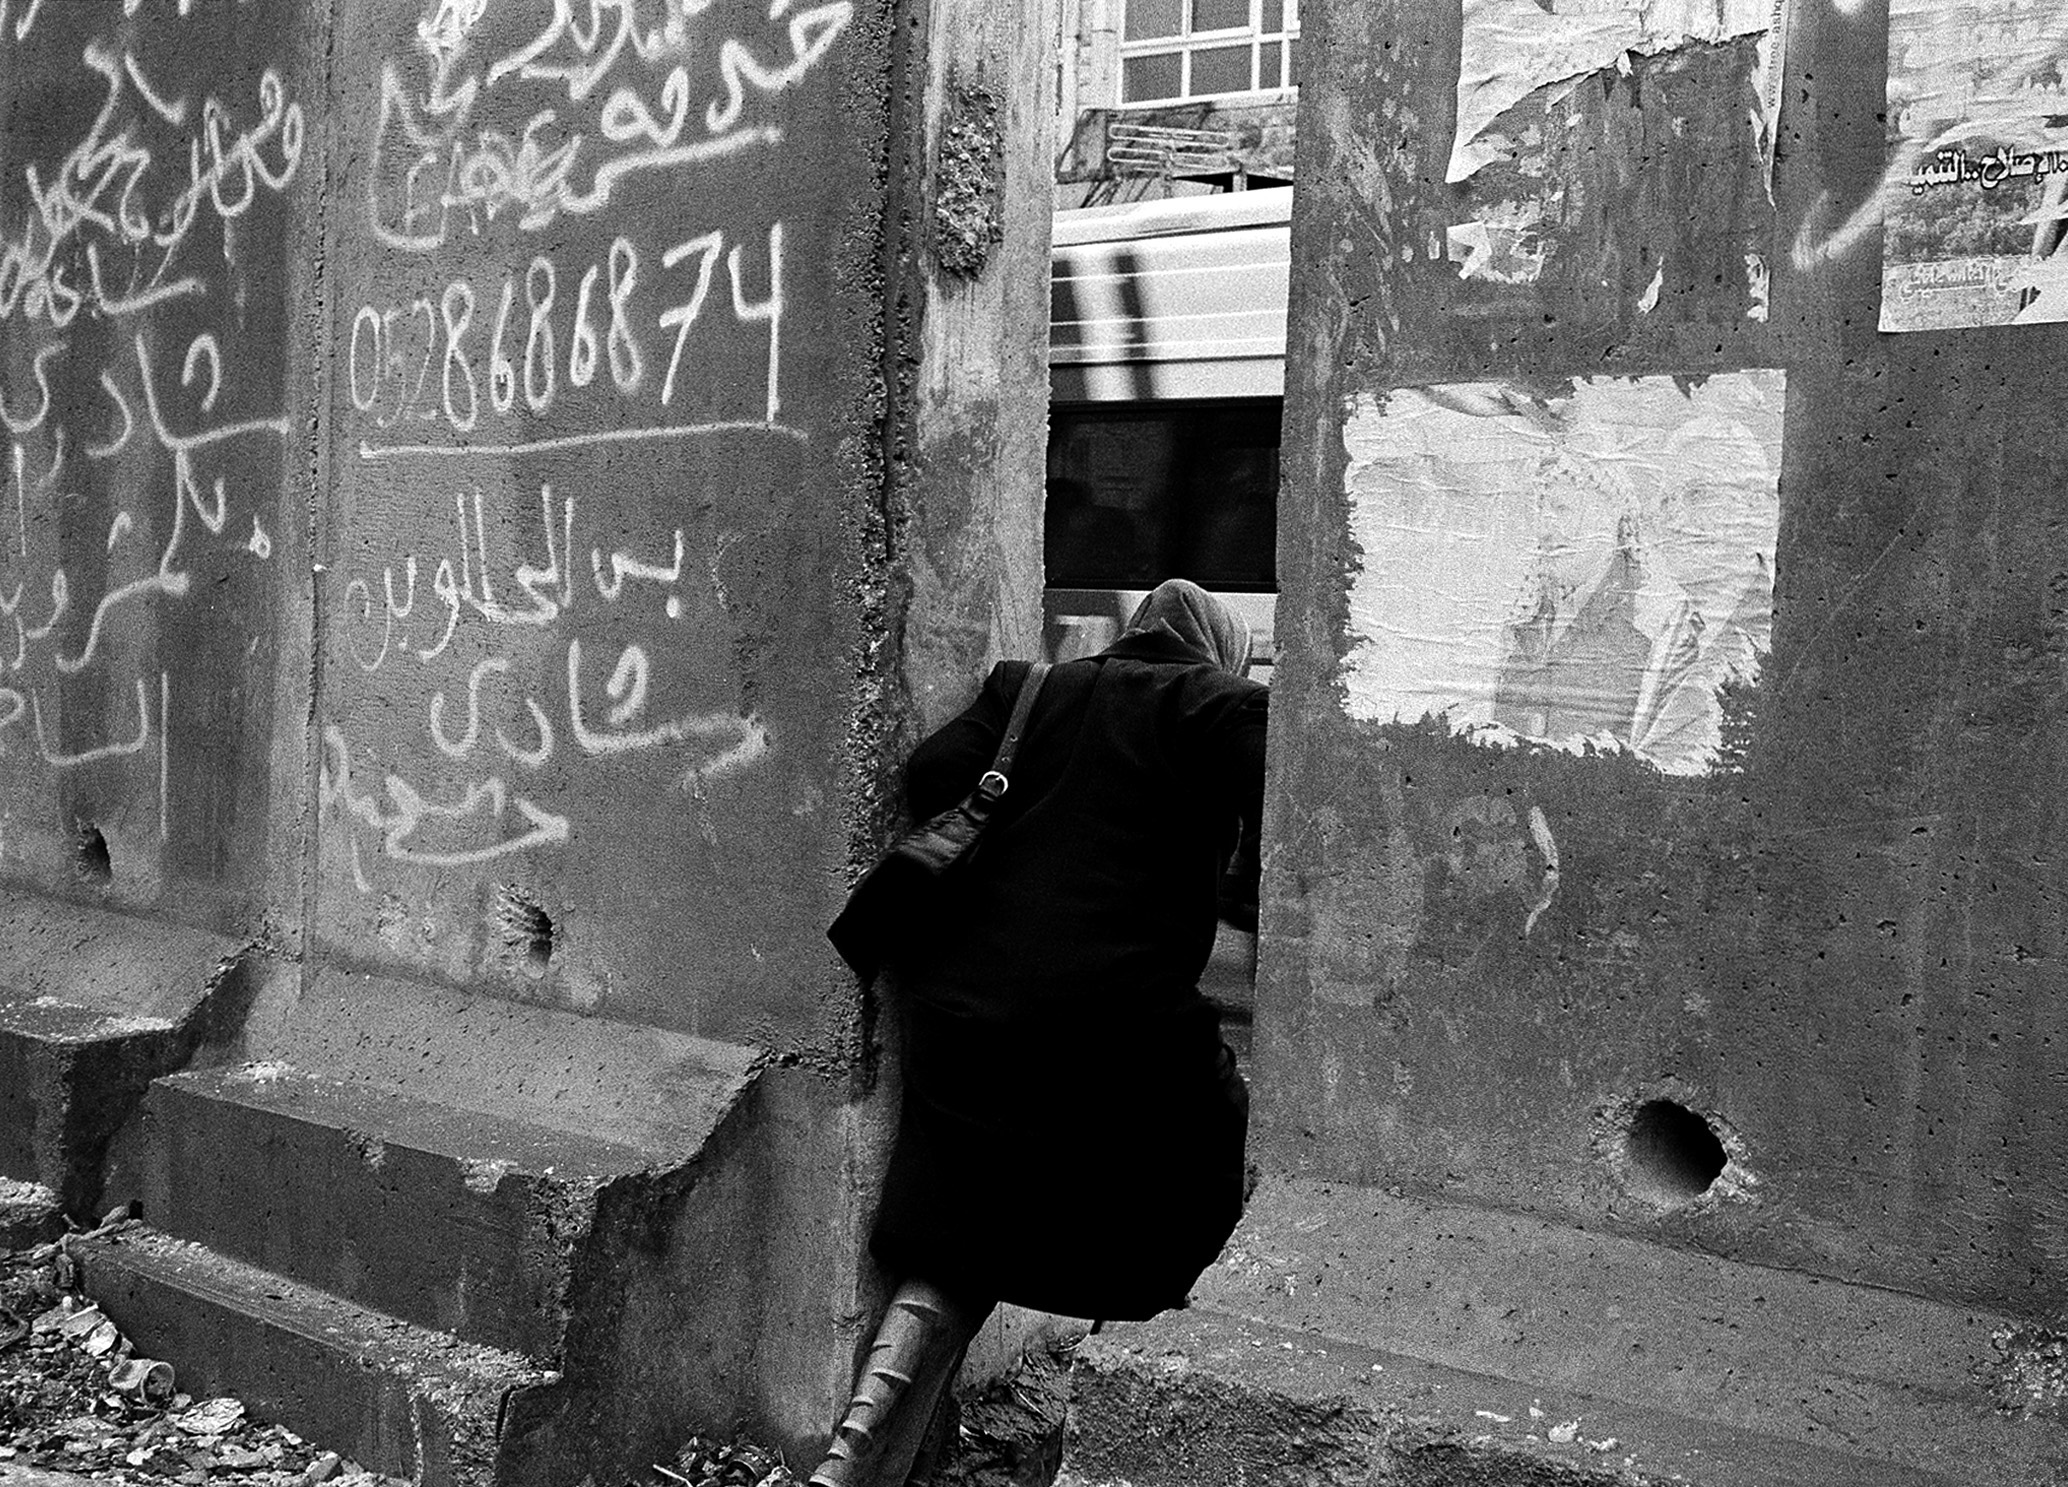 A woman wearing a head scarf and long black dress crosses at a gap in a concrete wall